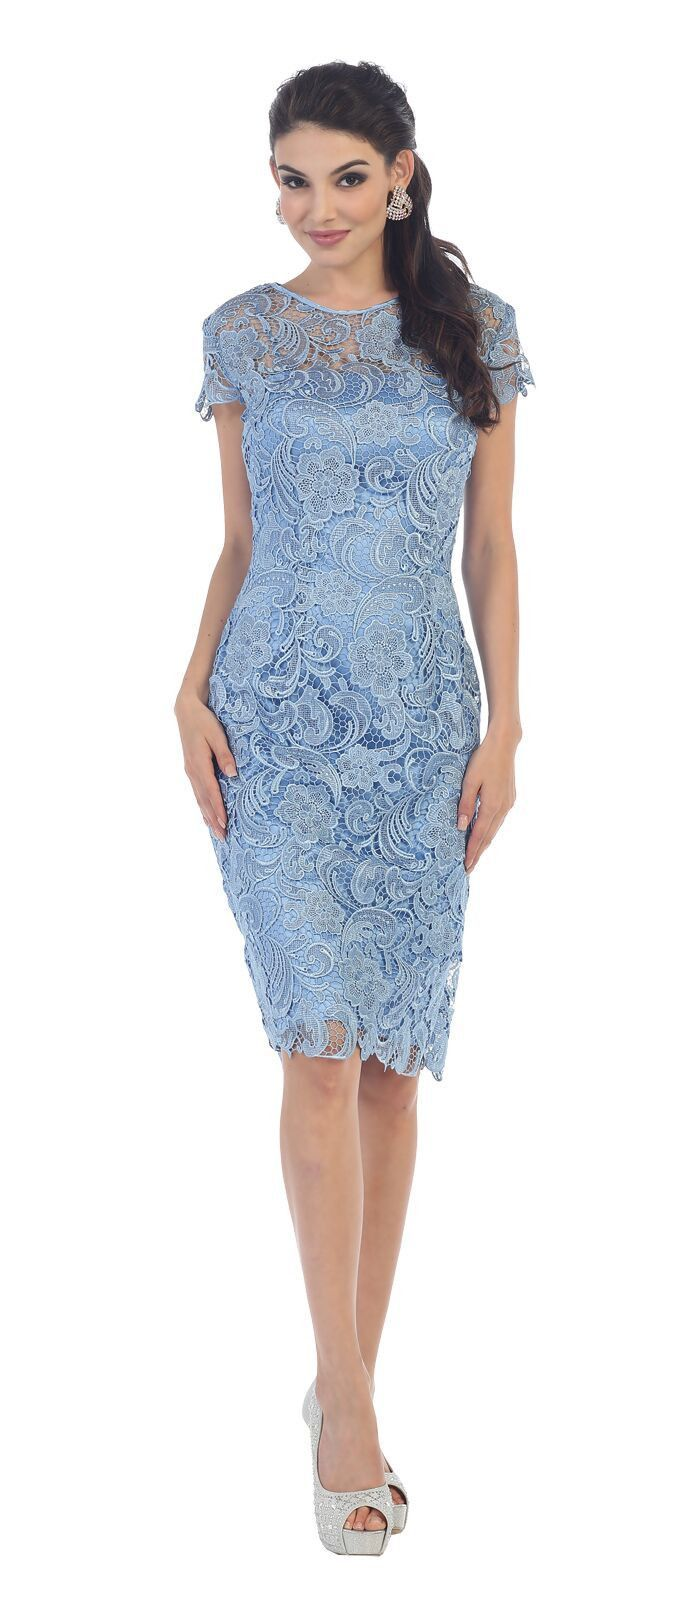 Short Lace Mother of Bride Dress 2018   Bride dresses, Shorts and ...